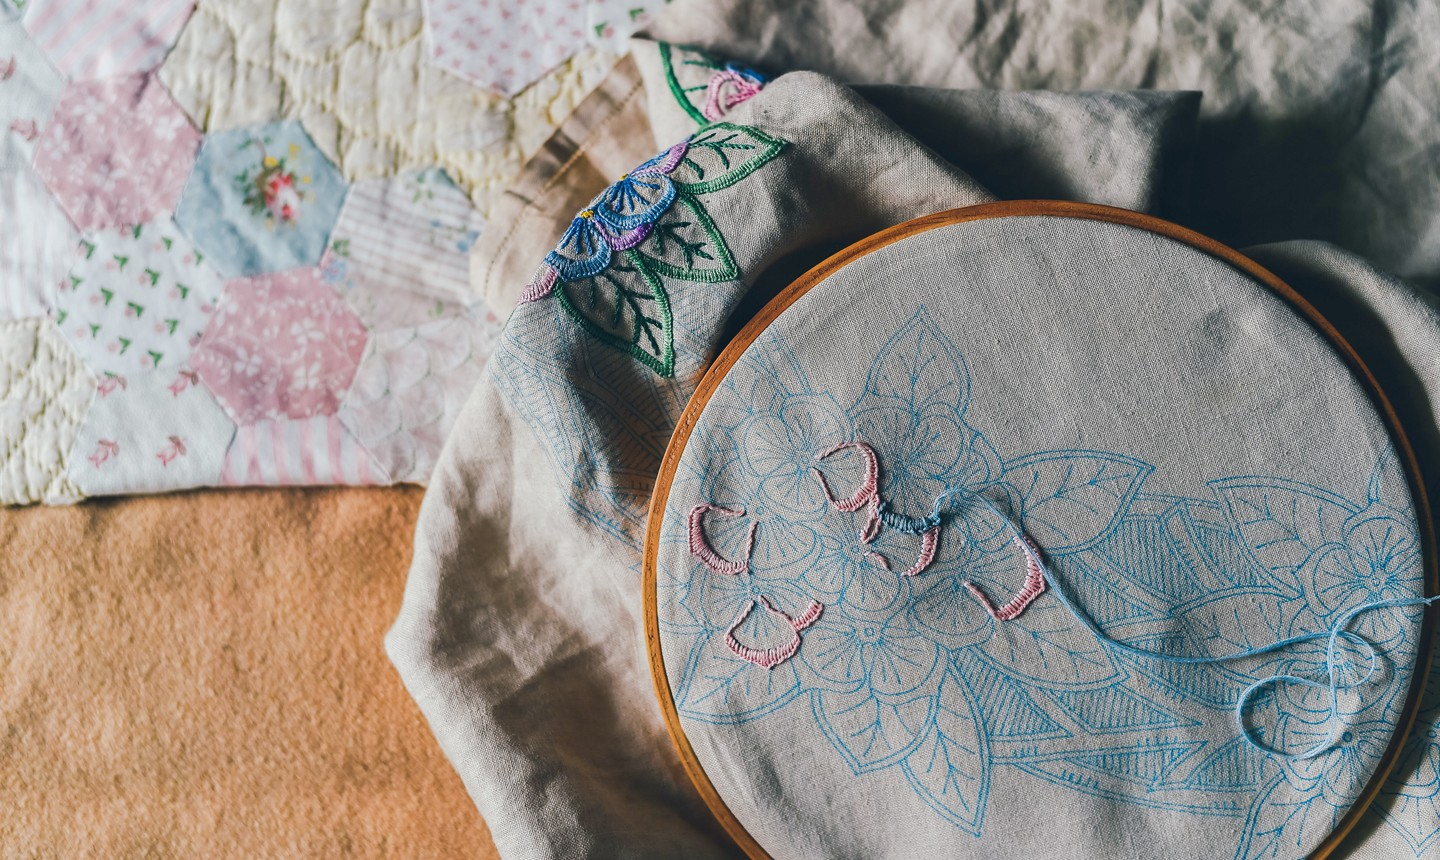 How To Make An Embroidery Pattern 5 Simple Ways To Transfer Embroidery Designs